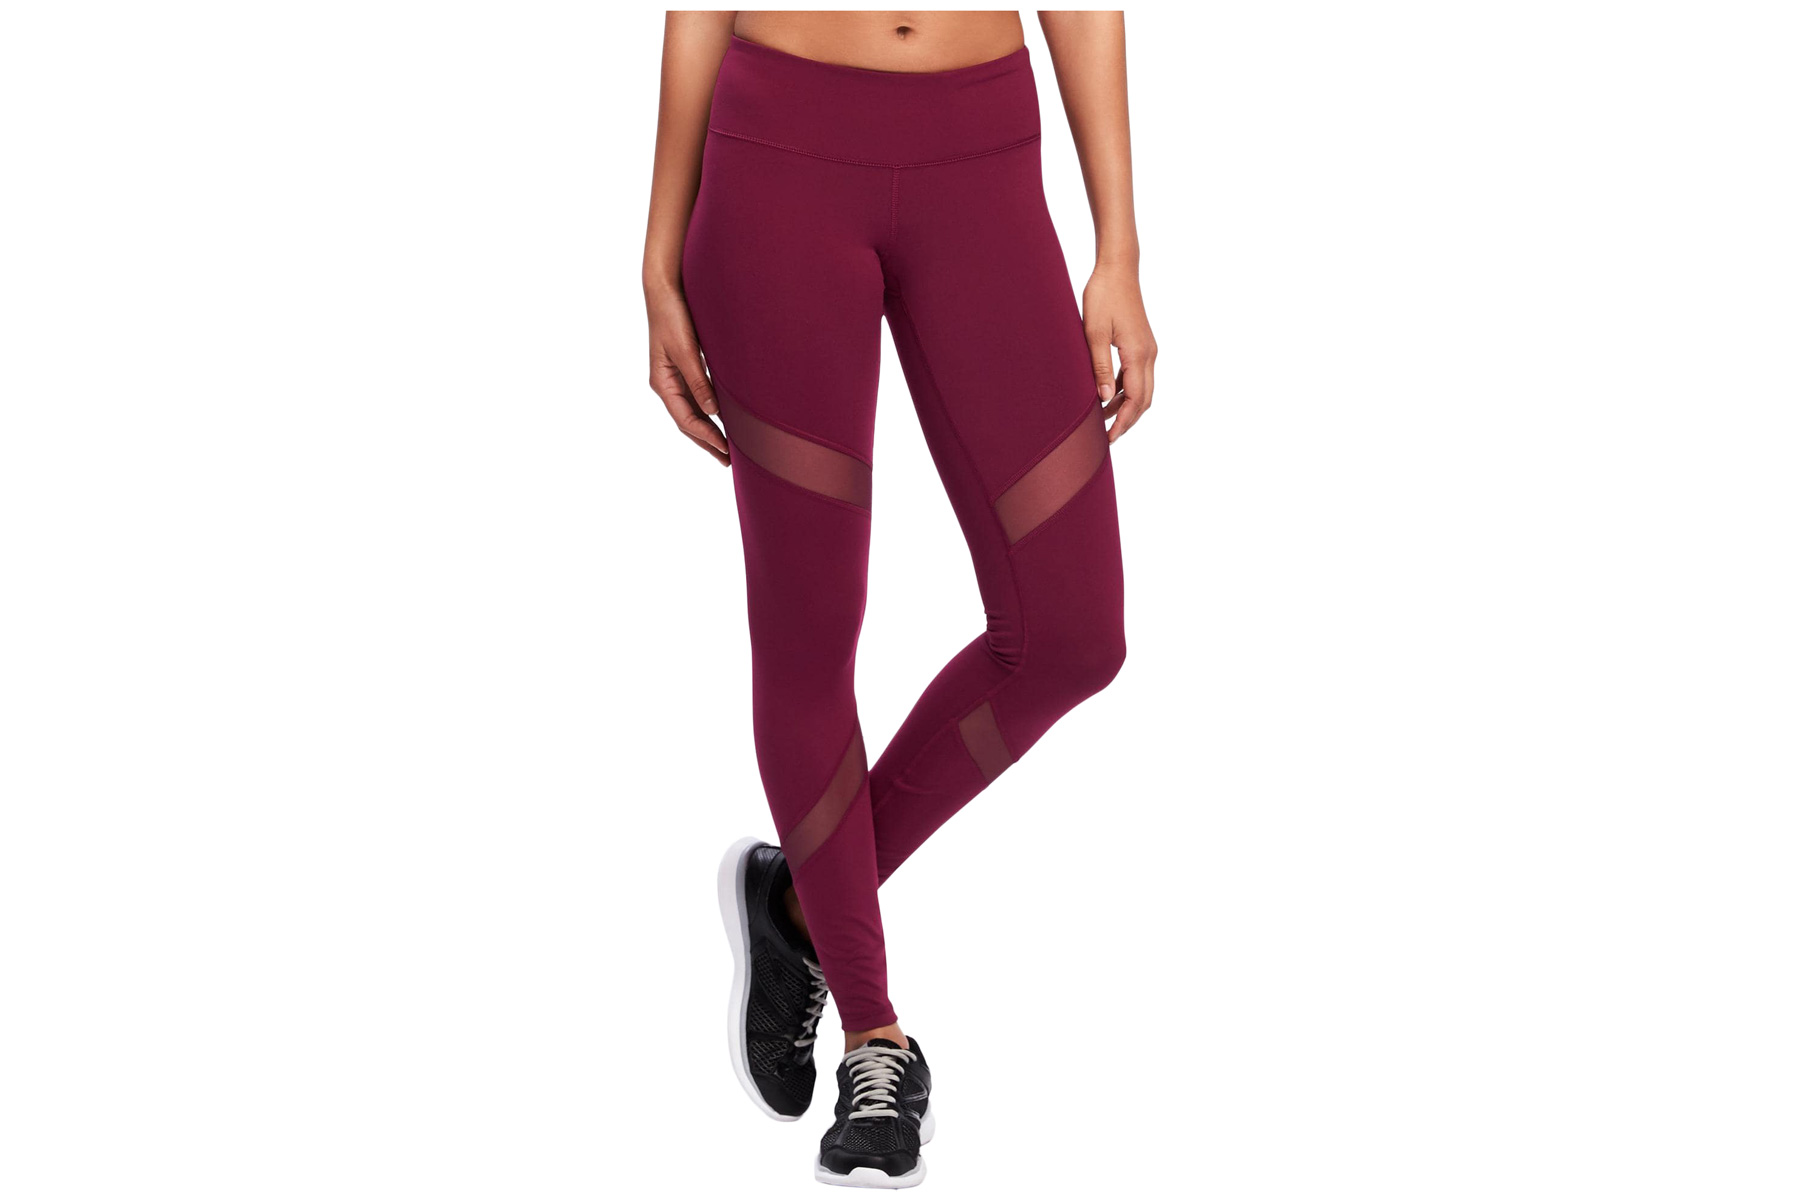 Go-Dry Mid-Rise Mesh-Panel Leggings for Women